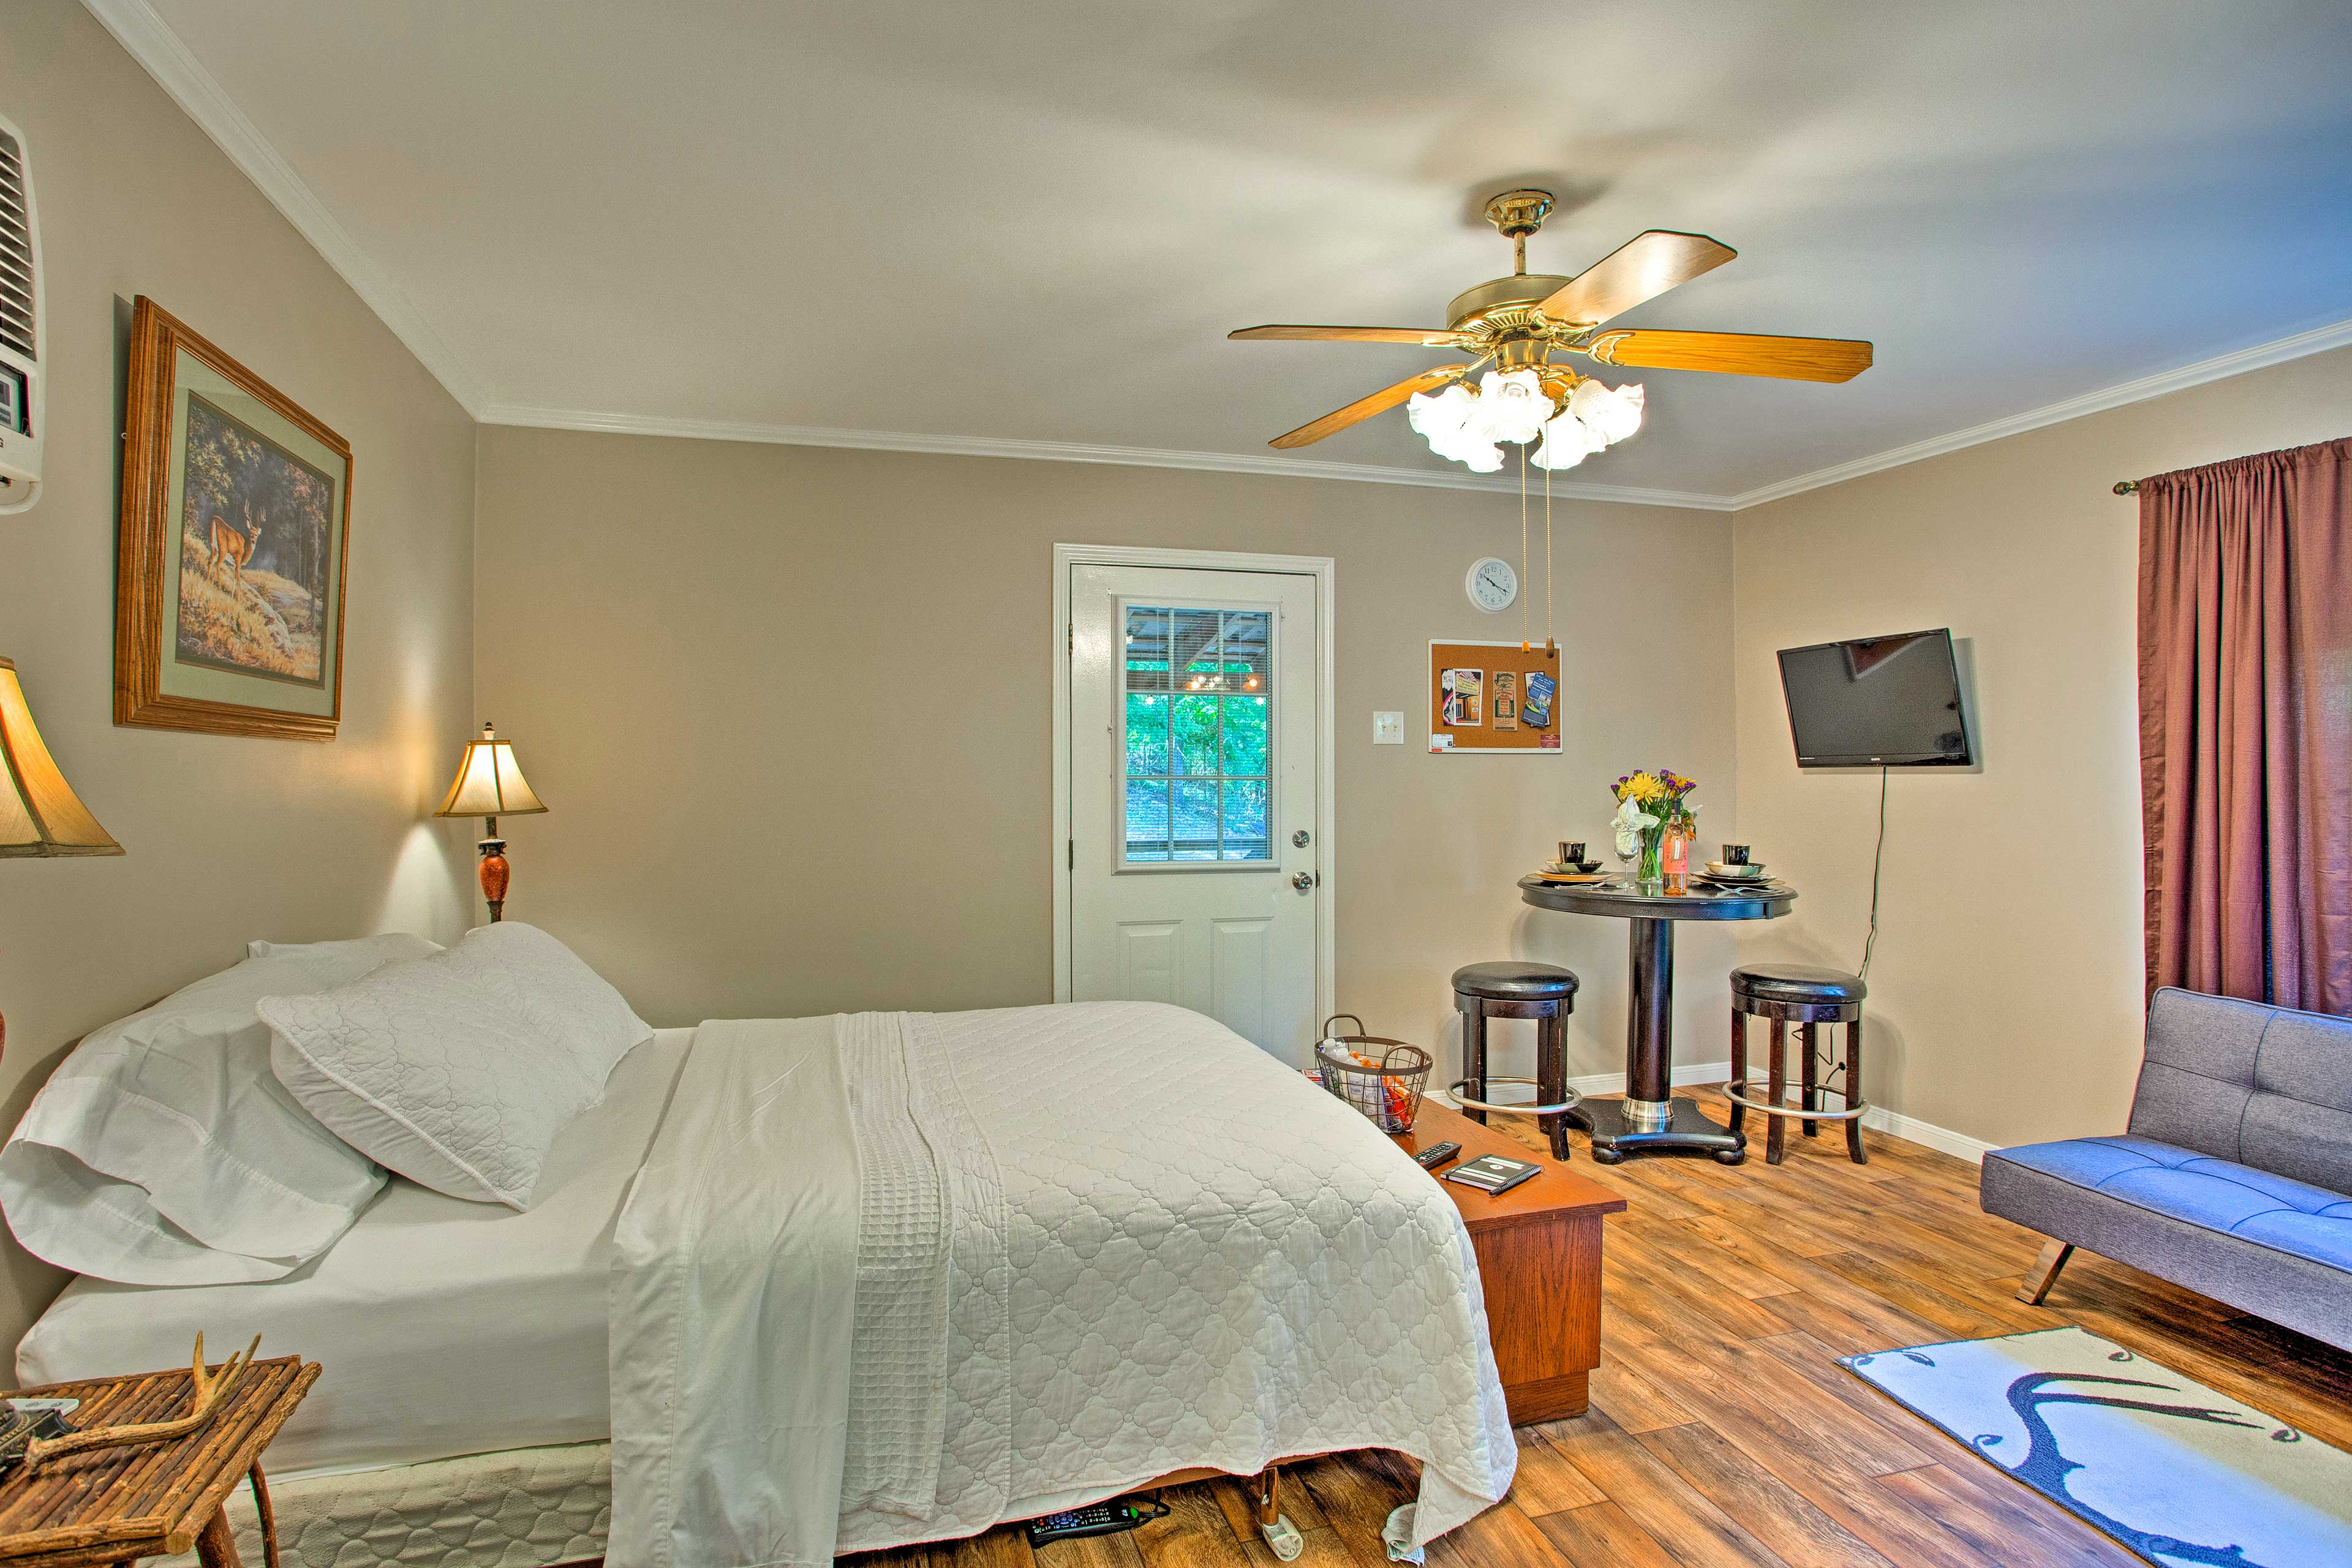 The studio features a comfy full-sized bed.